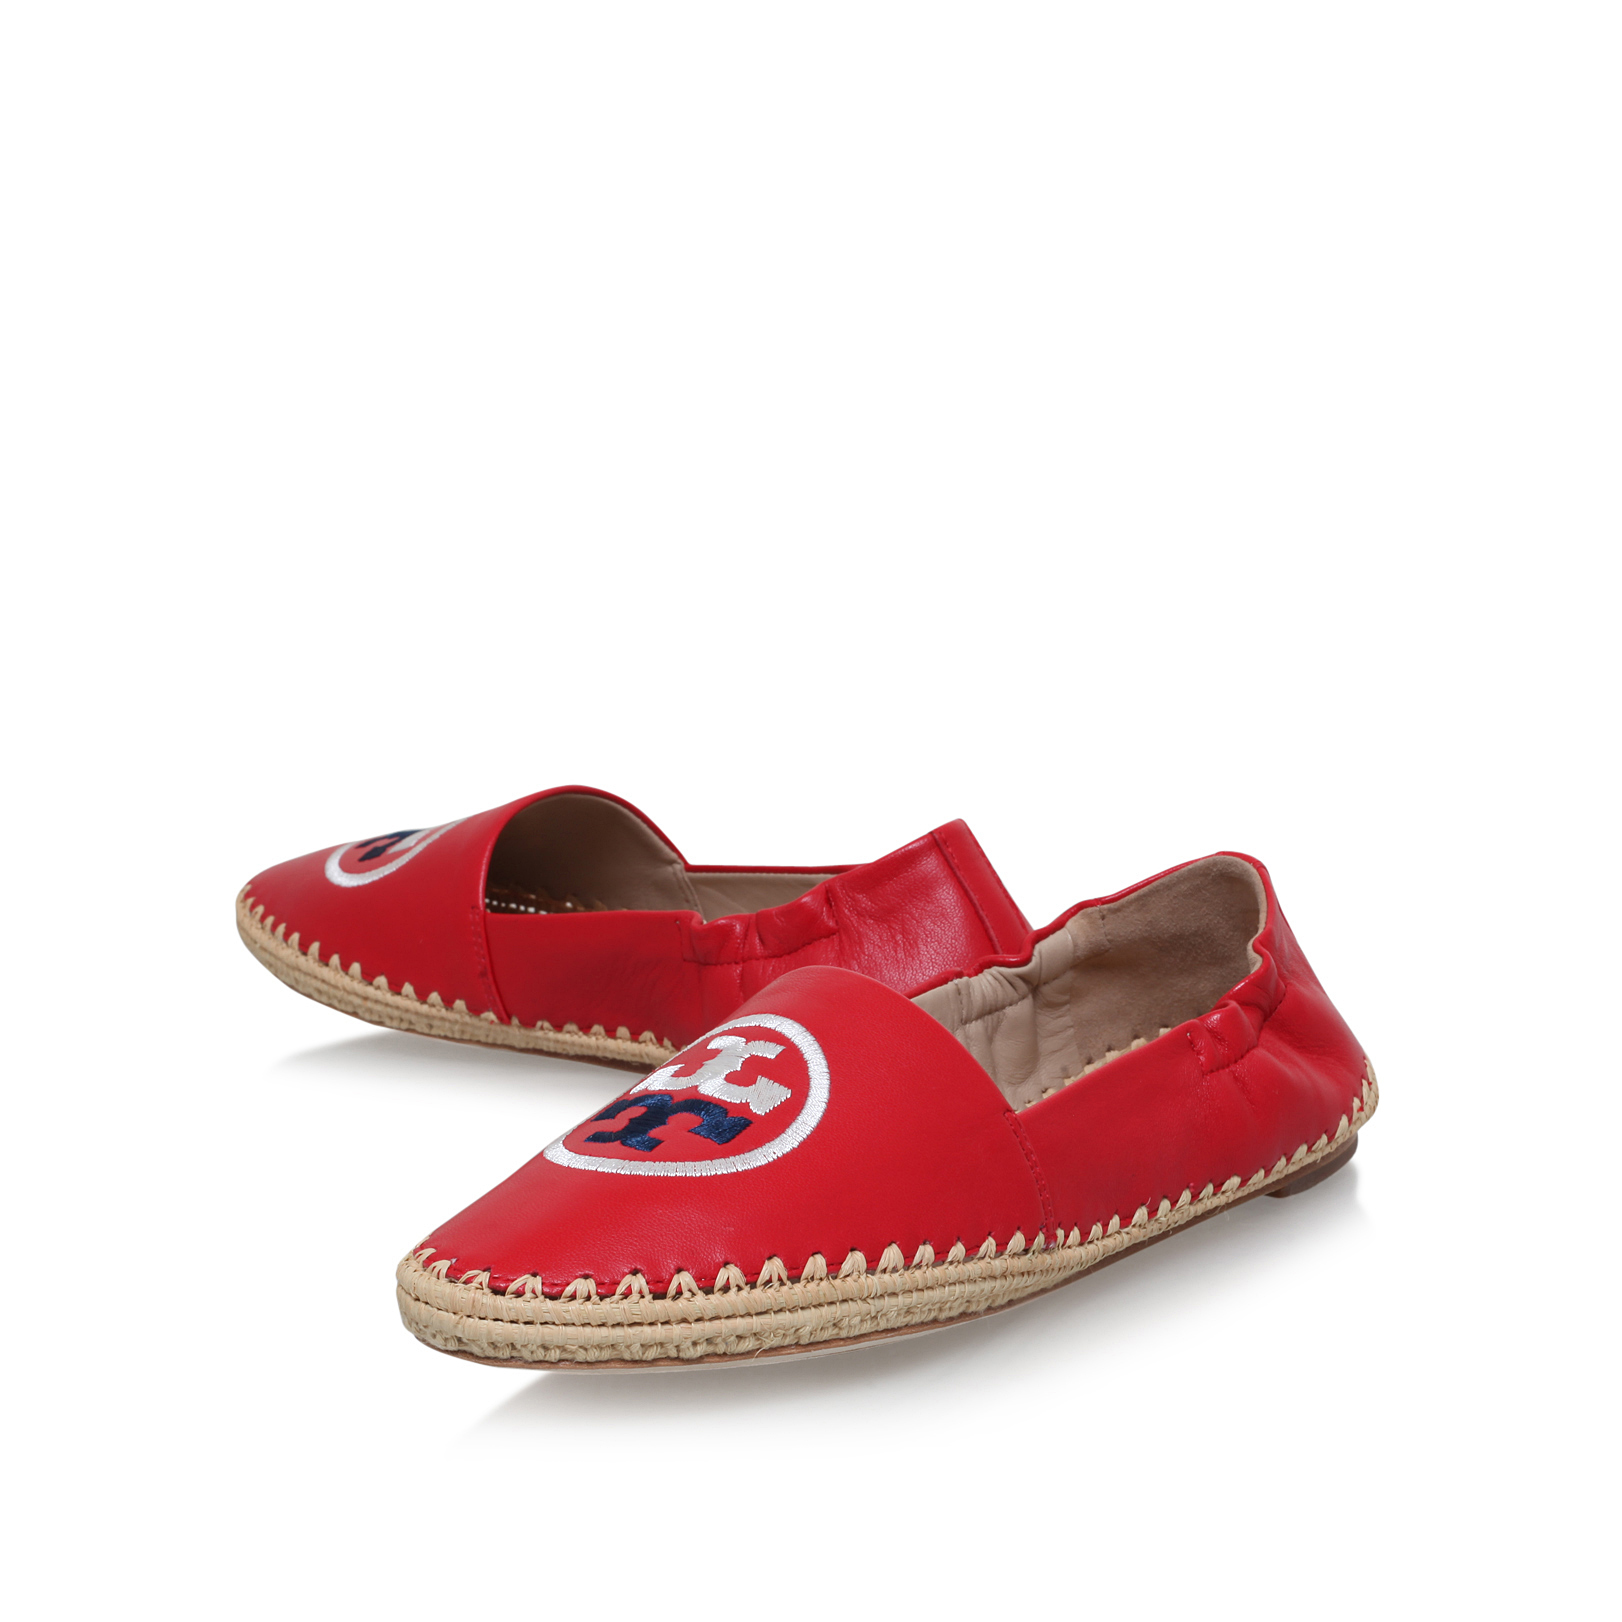 30574bdfaf5 DARIEN LOAFER  Tory Burch Darien Loafer Red Leather Sandal  by TORY ...